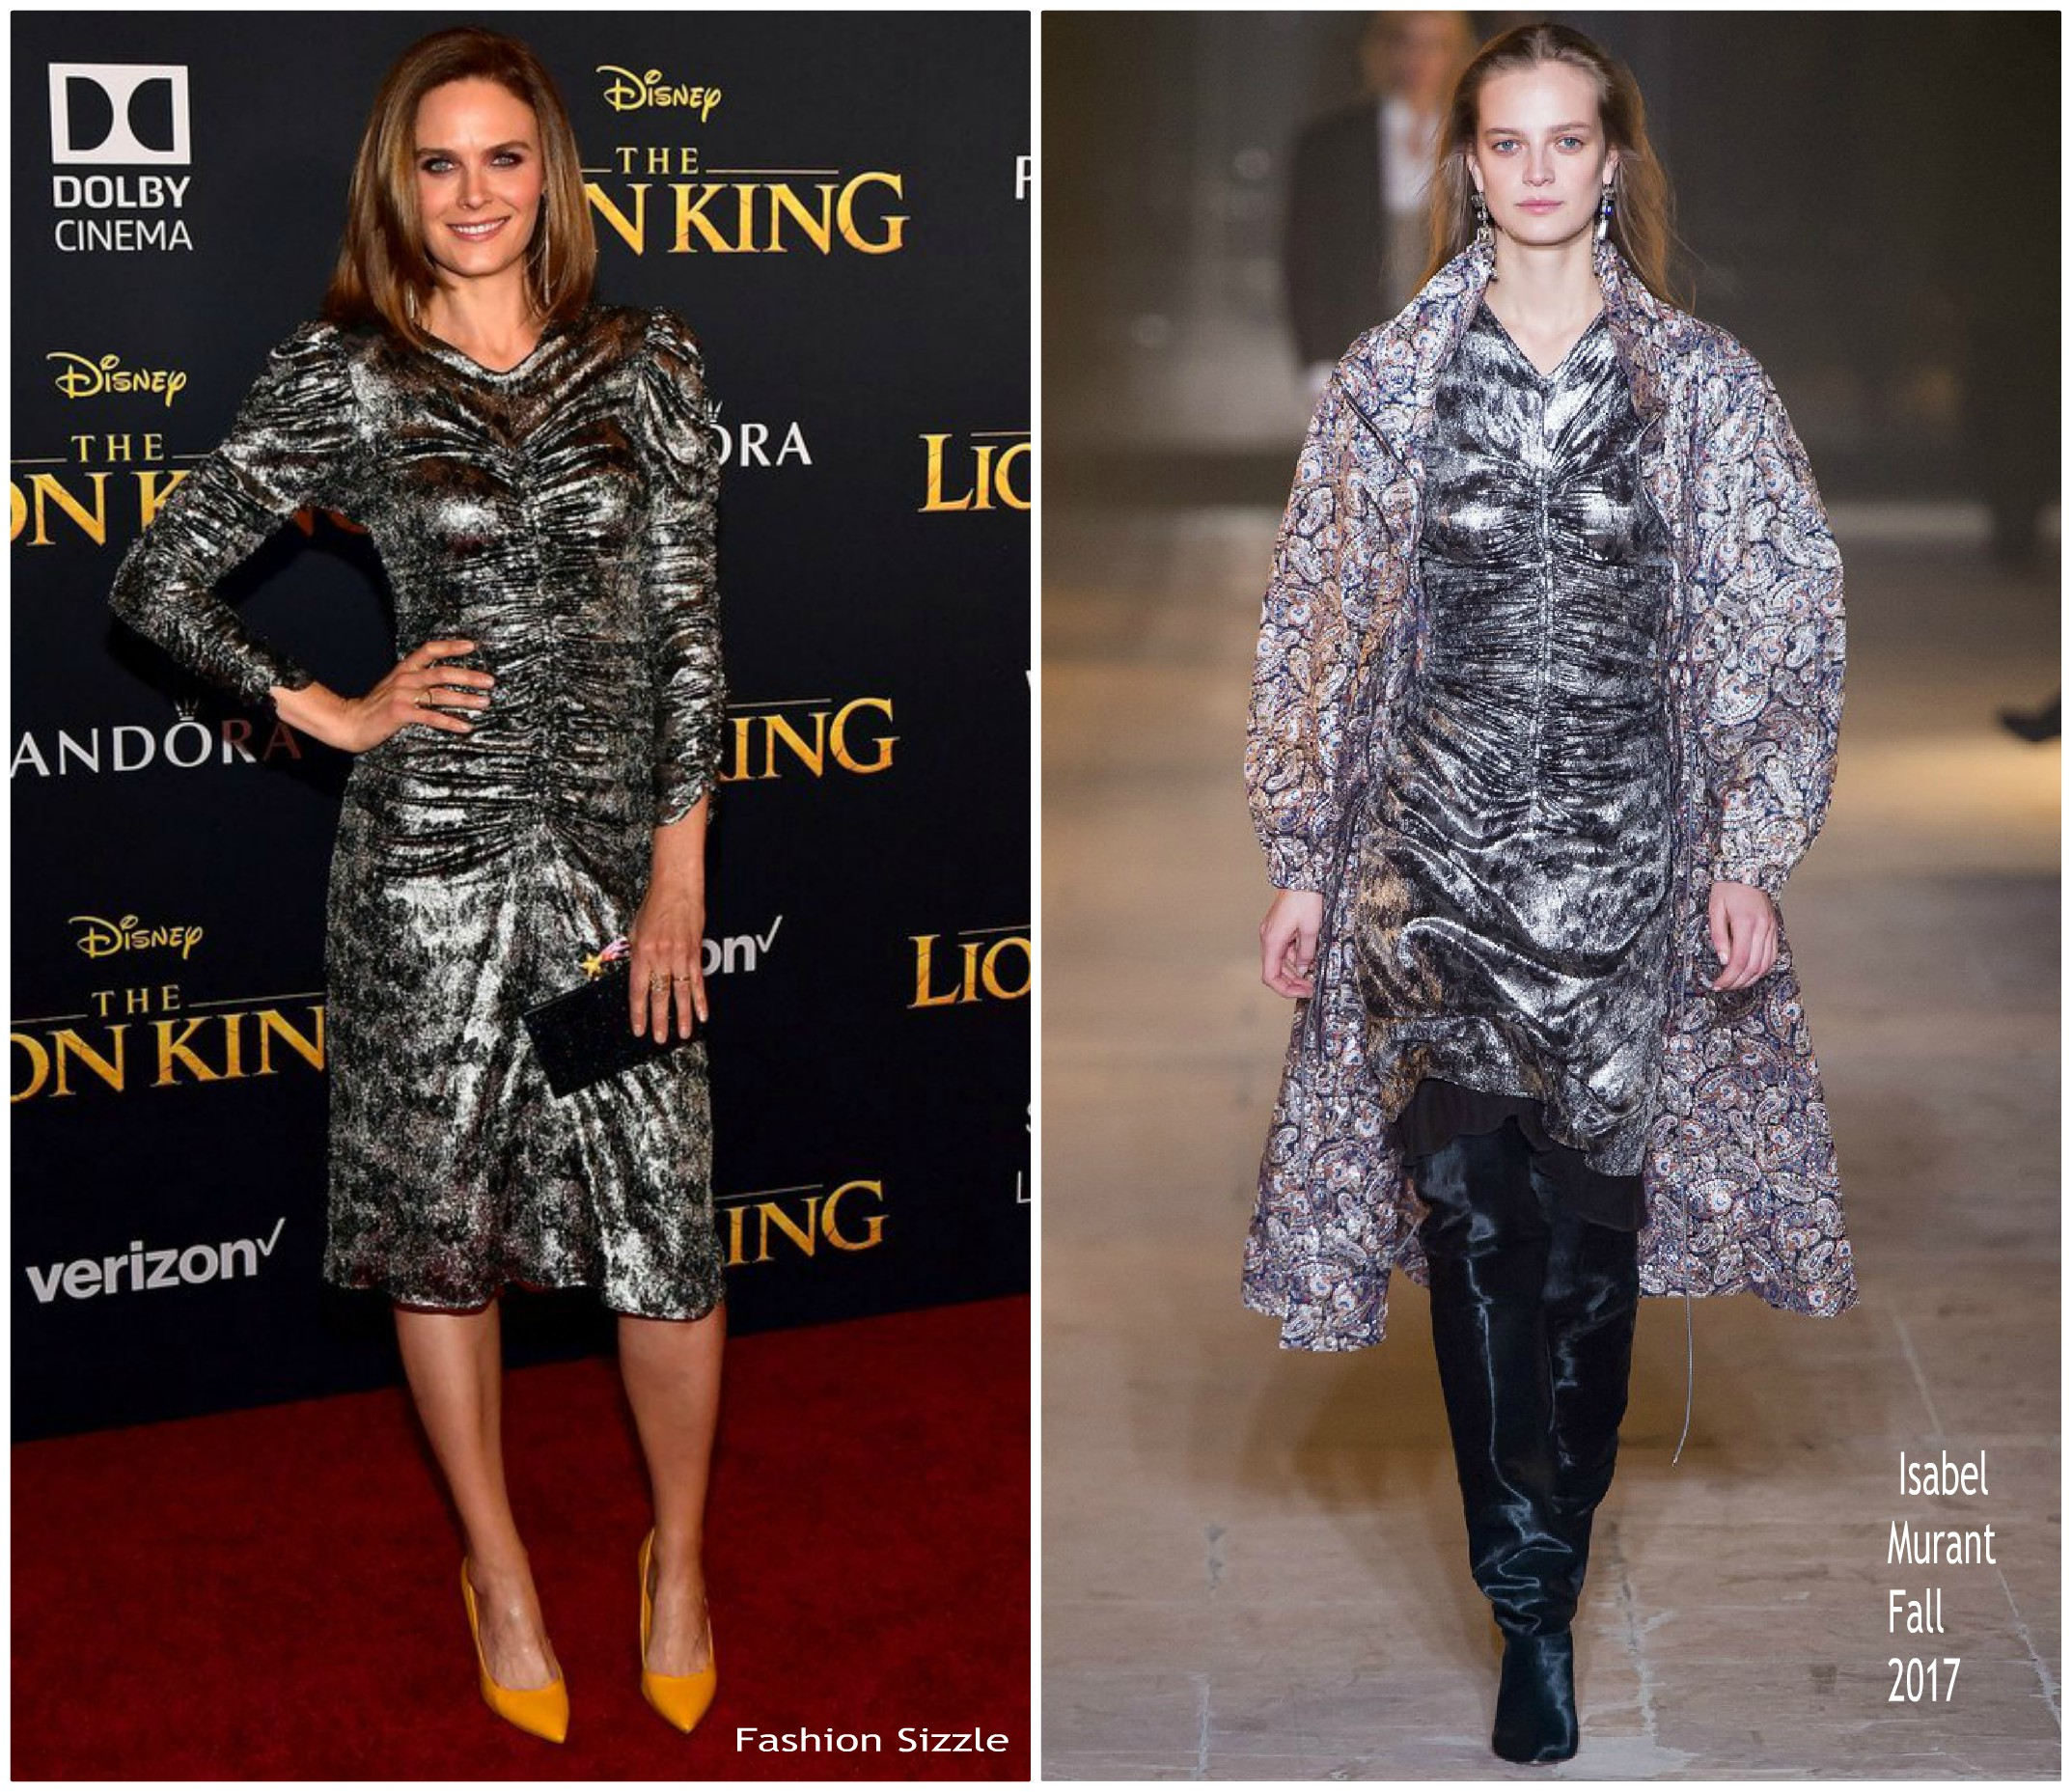 emily-deschanel-in-isabel-marant-lion-king-world-premiere